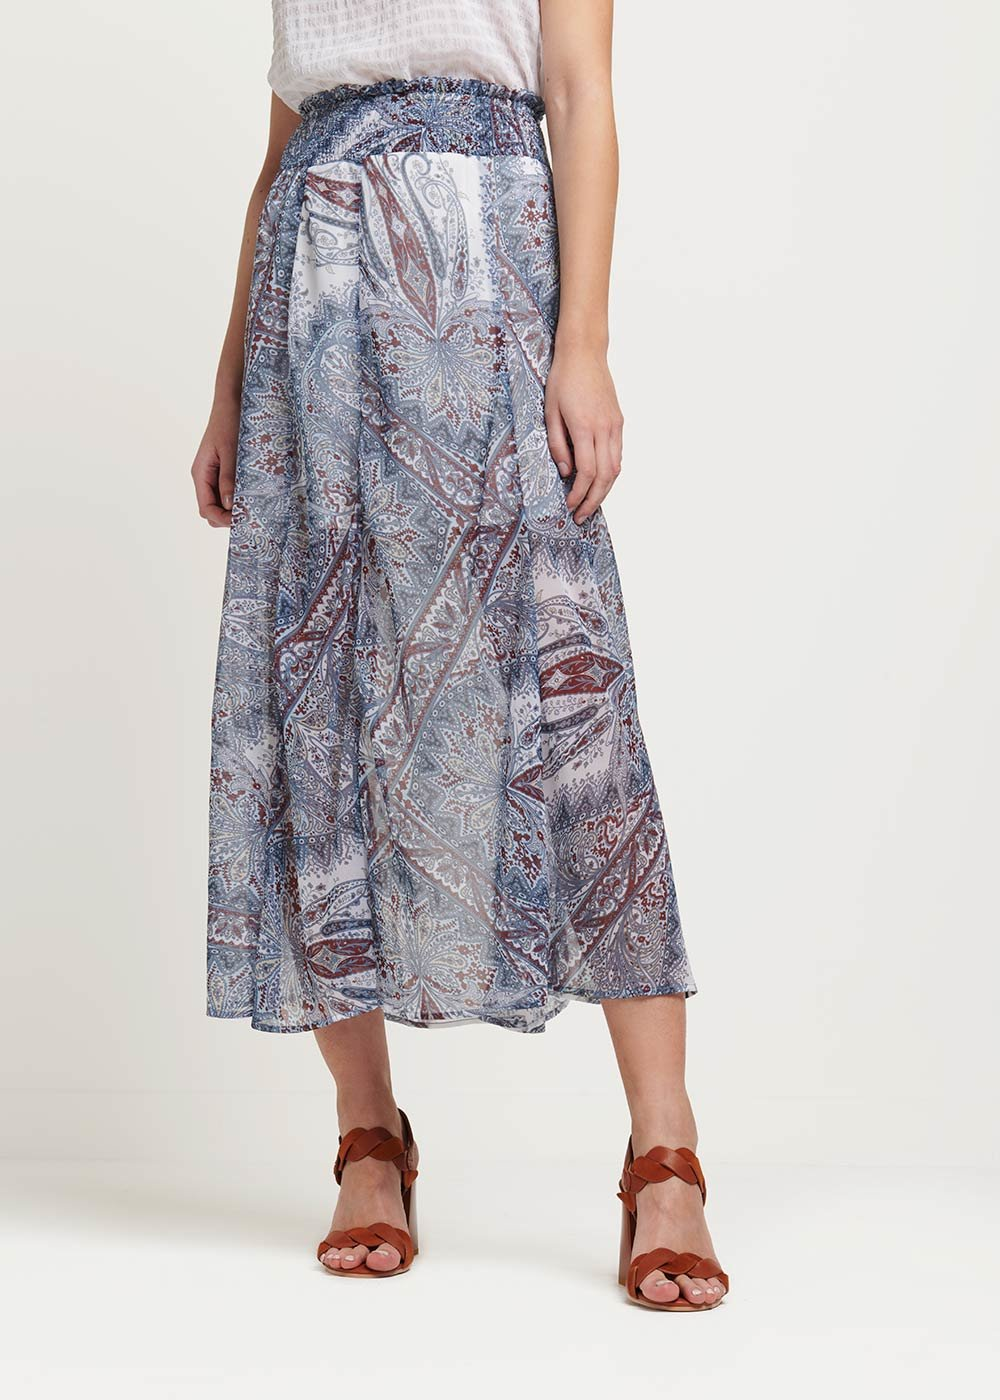 Giuditta all over patterned skirt - White\ Avion\ Fantasia - Woman